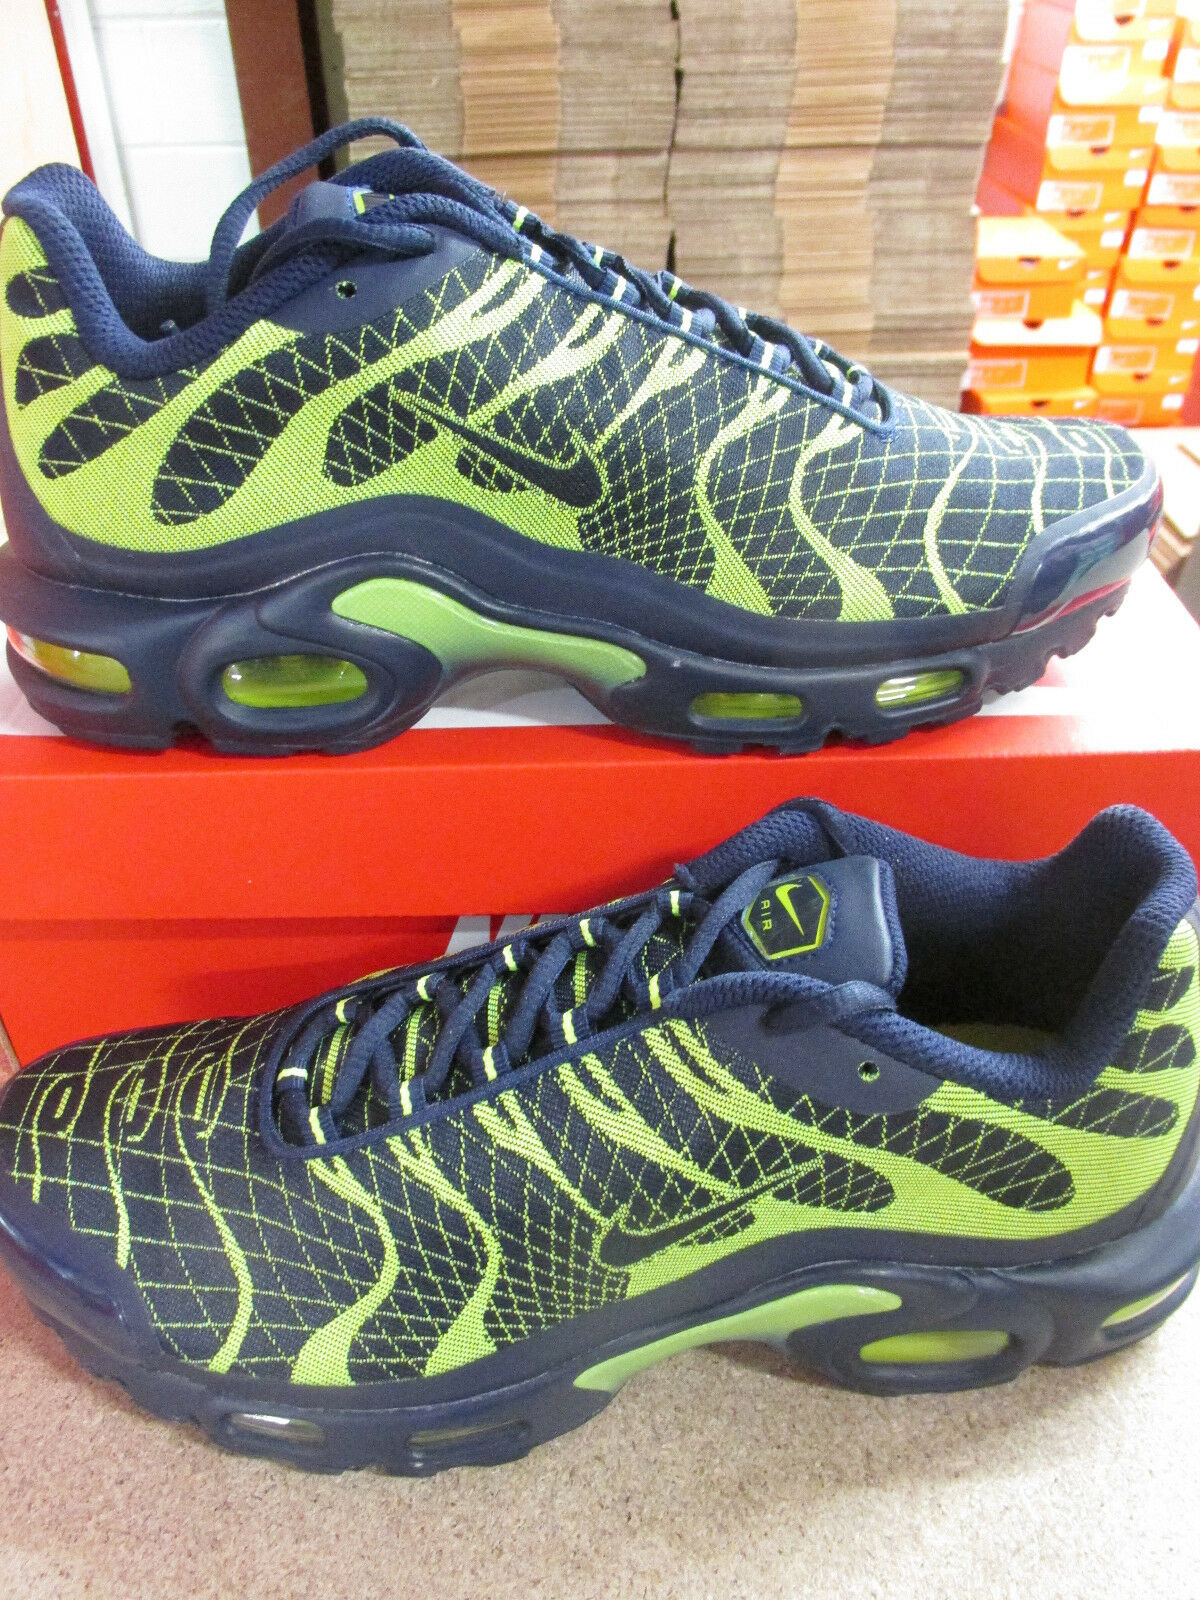 Nike air max plus JCRD mens running trainers 845006 407 sneakers shoes